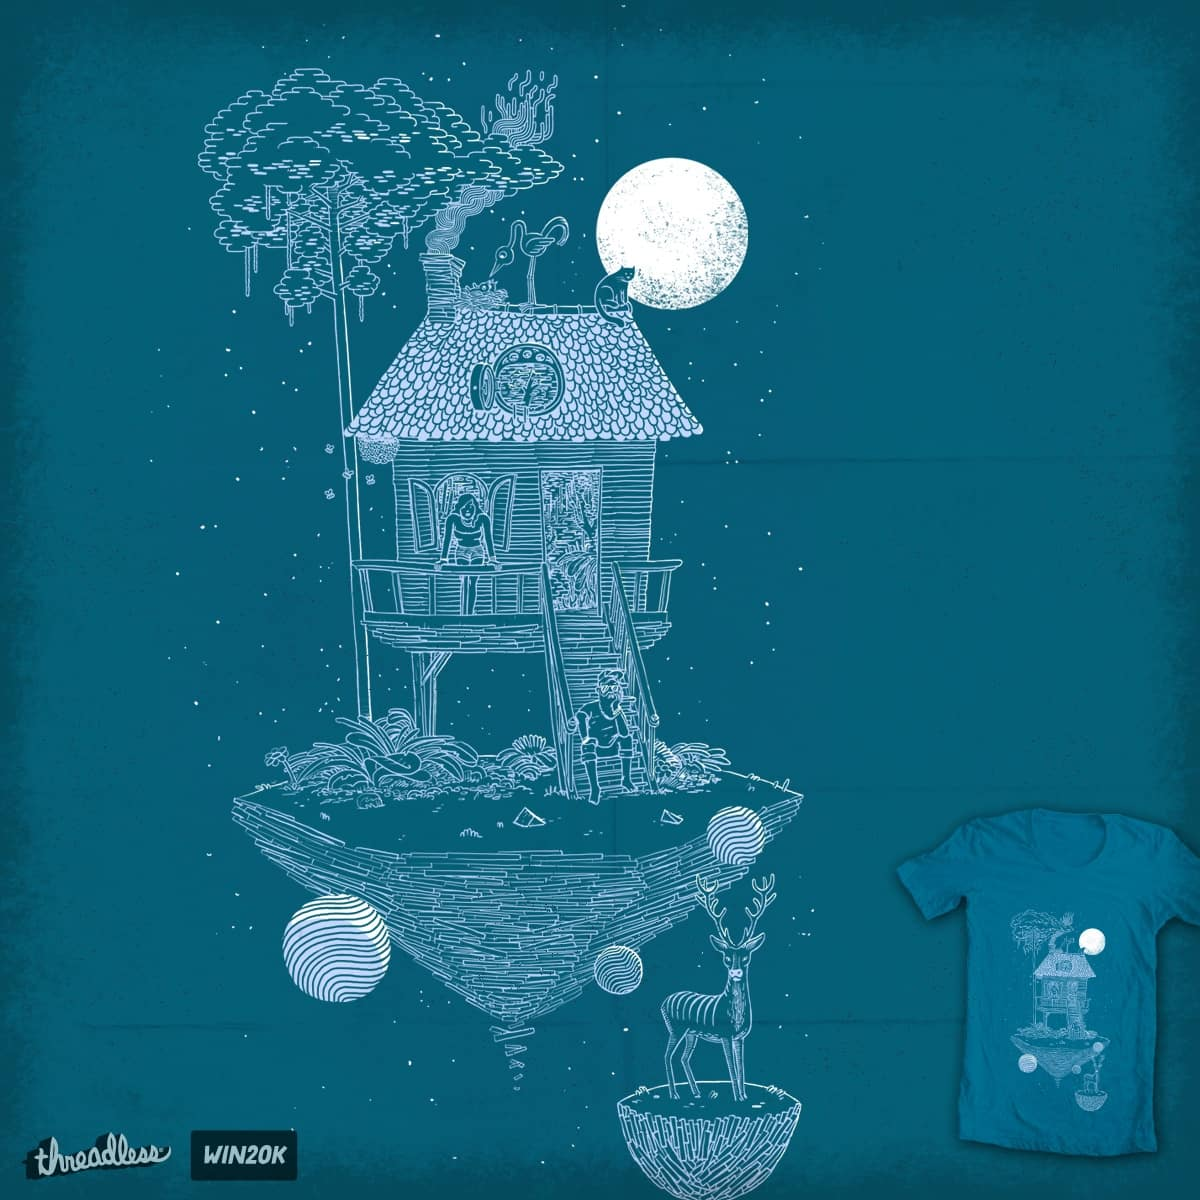 Under the moonlight by c-royal on Threadless